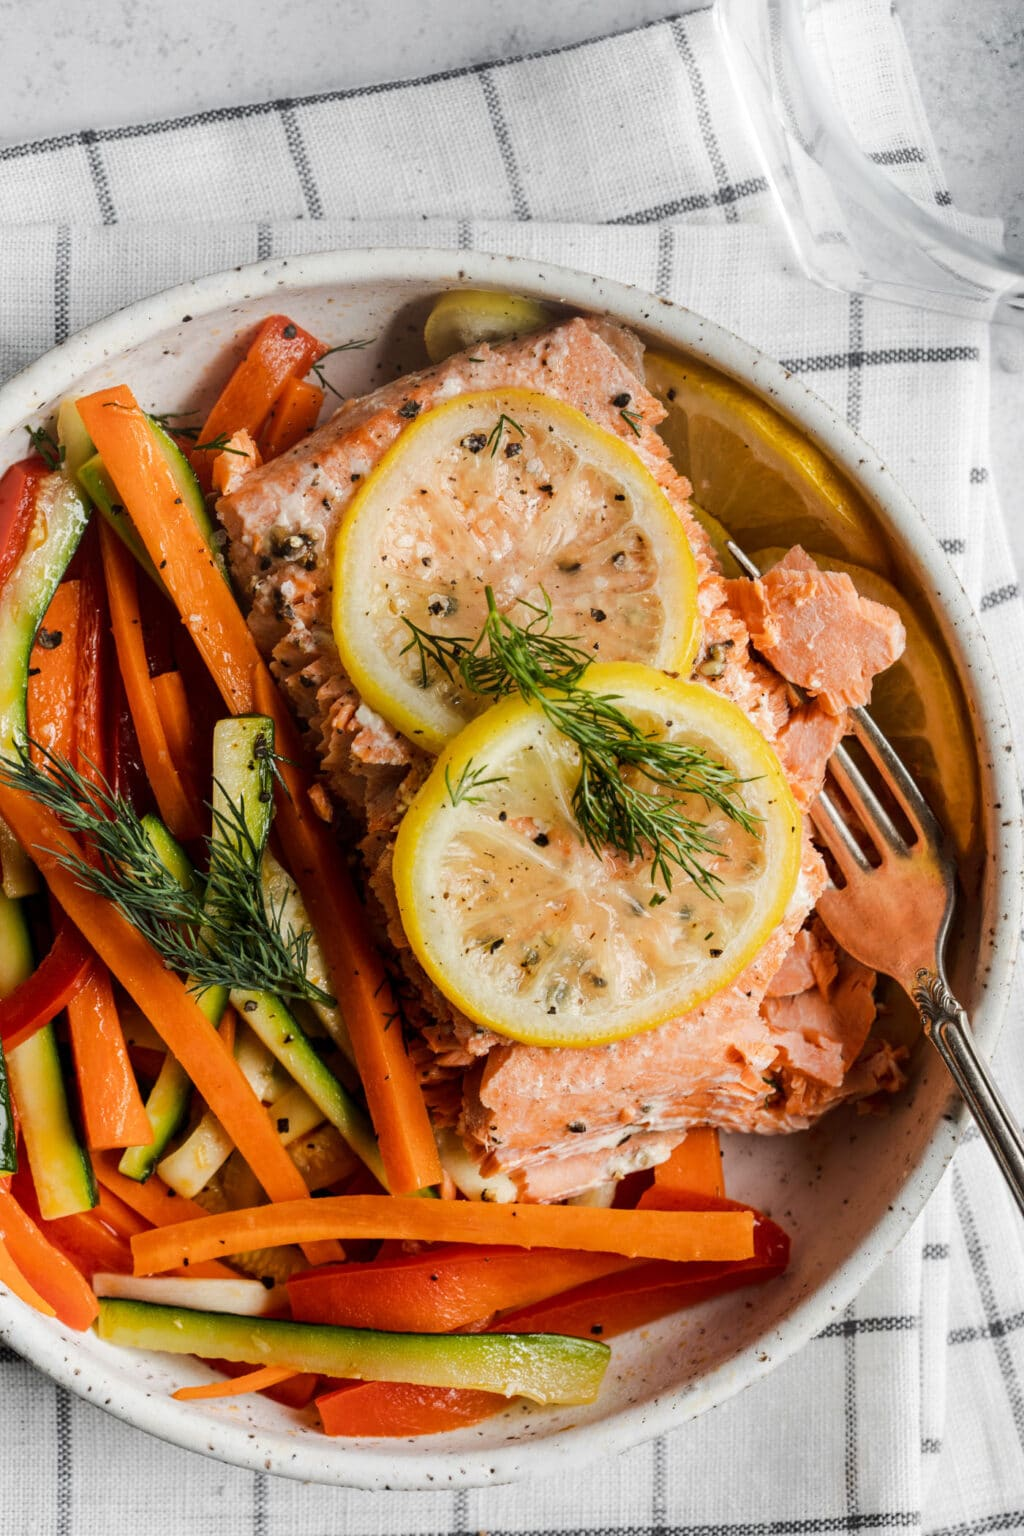 A white plate with salmon and vegetables on top of a dish towel.